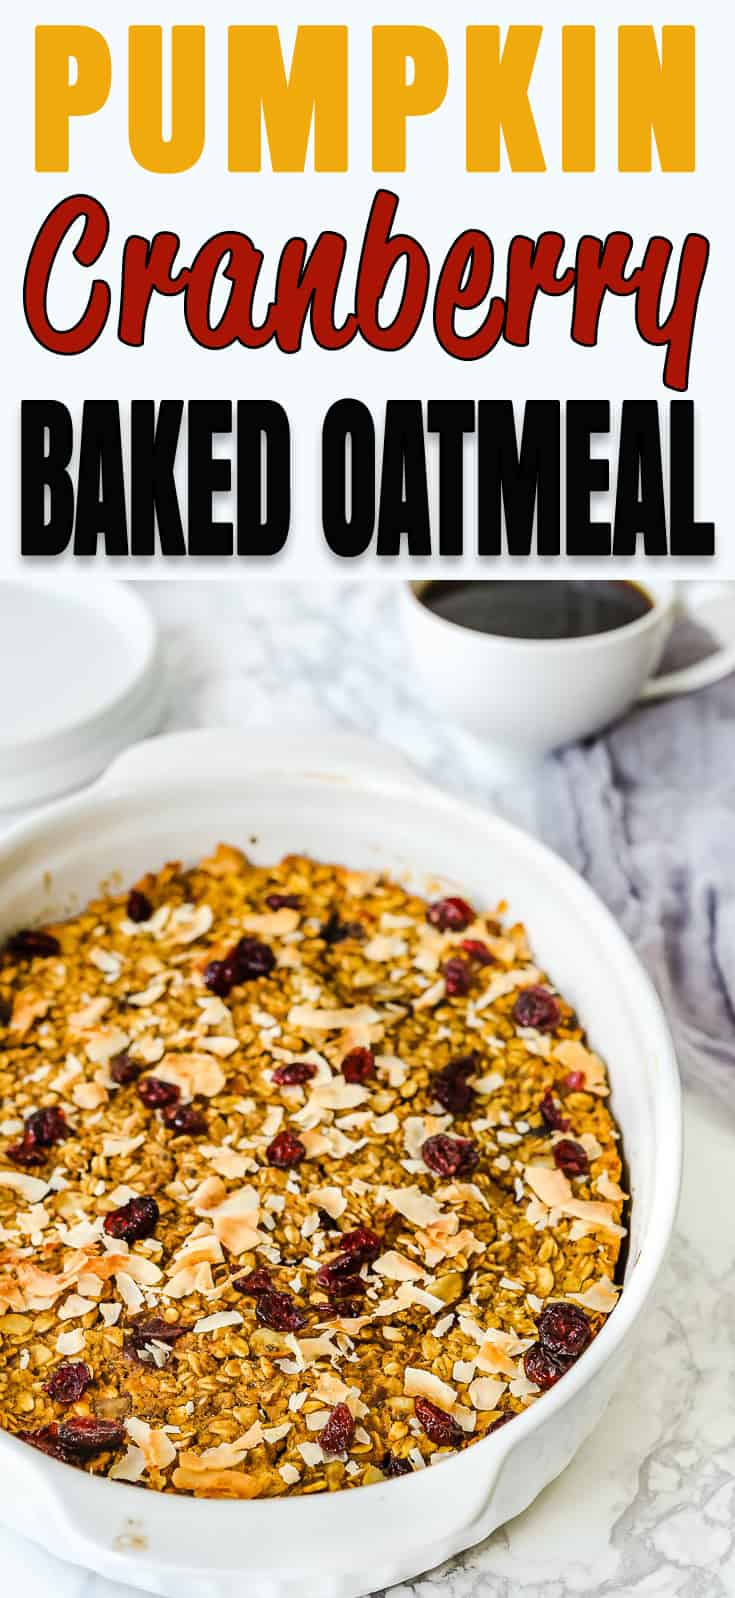 This Pumpkin Cranberry Baked Oatmeal is the perfect breakfast any day of the week! Hearty, filling, and yummy, this baked oatmeal is what you have been looking for to start your day off right. #recipe #pumpkin #oatmeal #breakfast #eggless